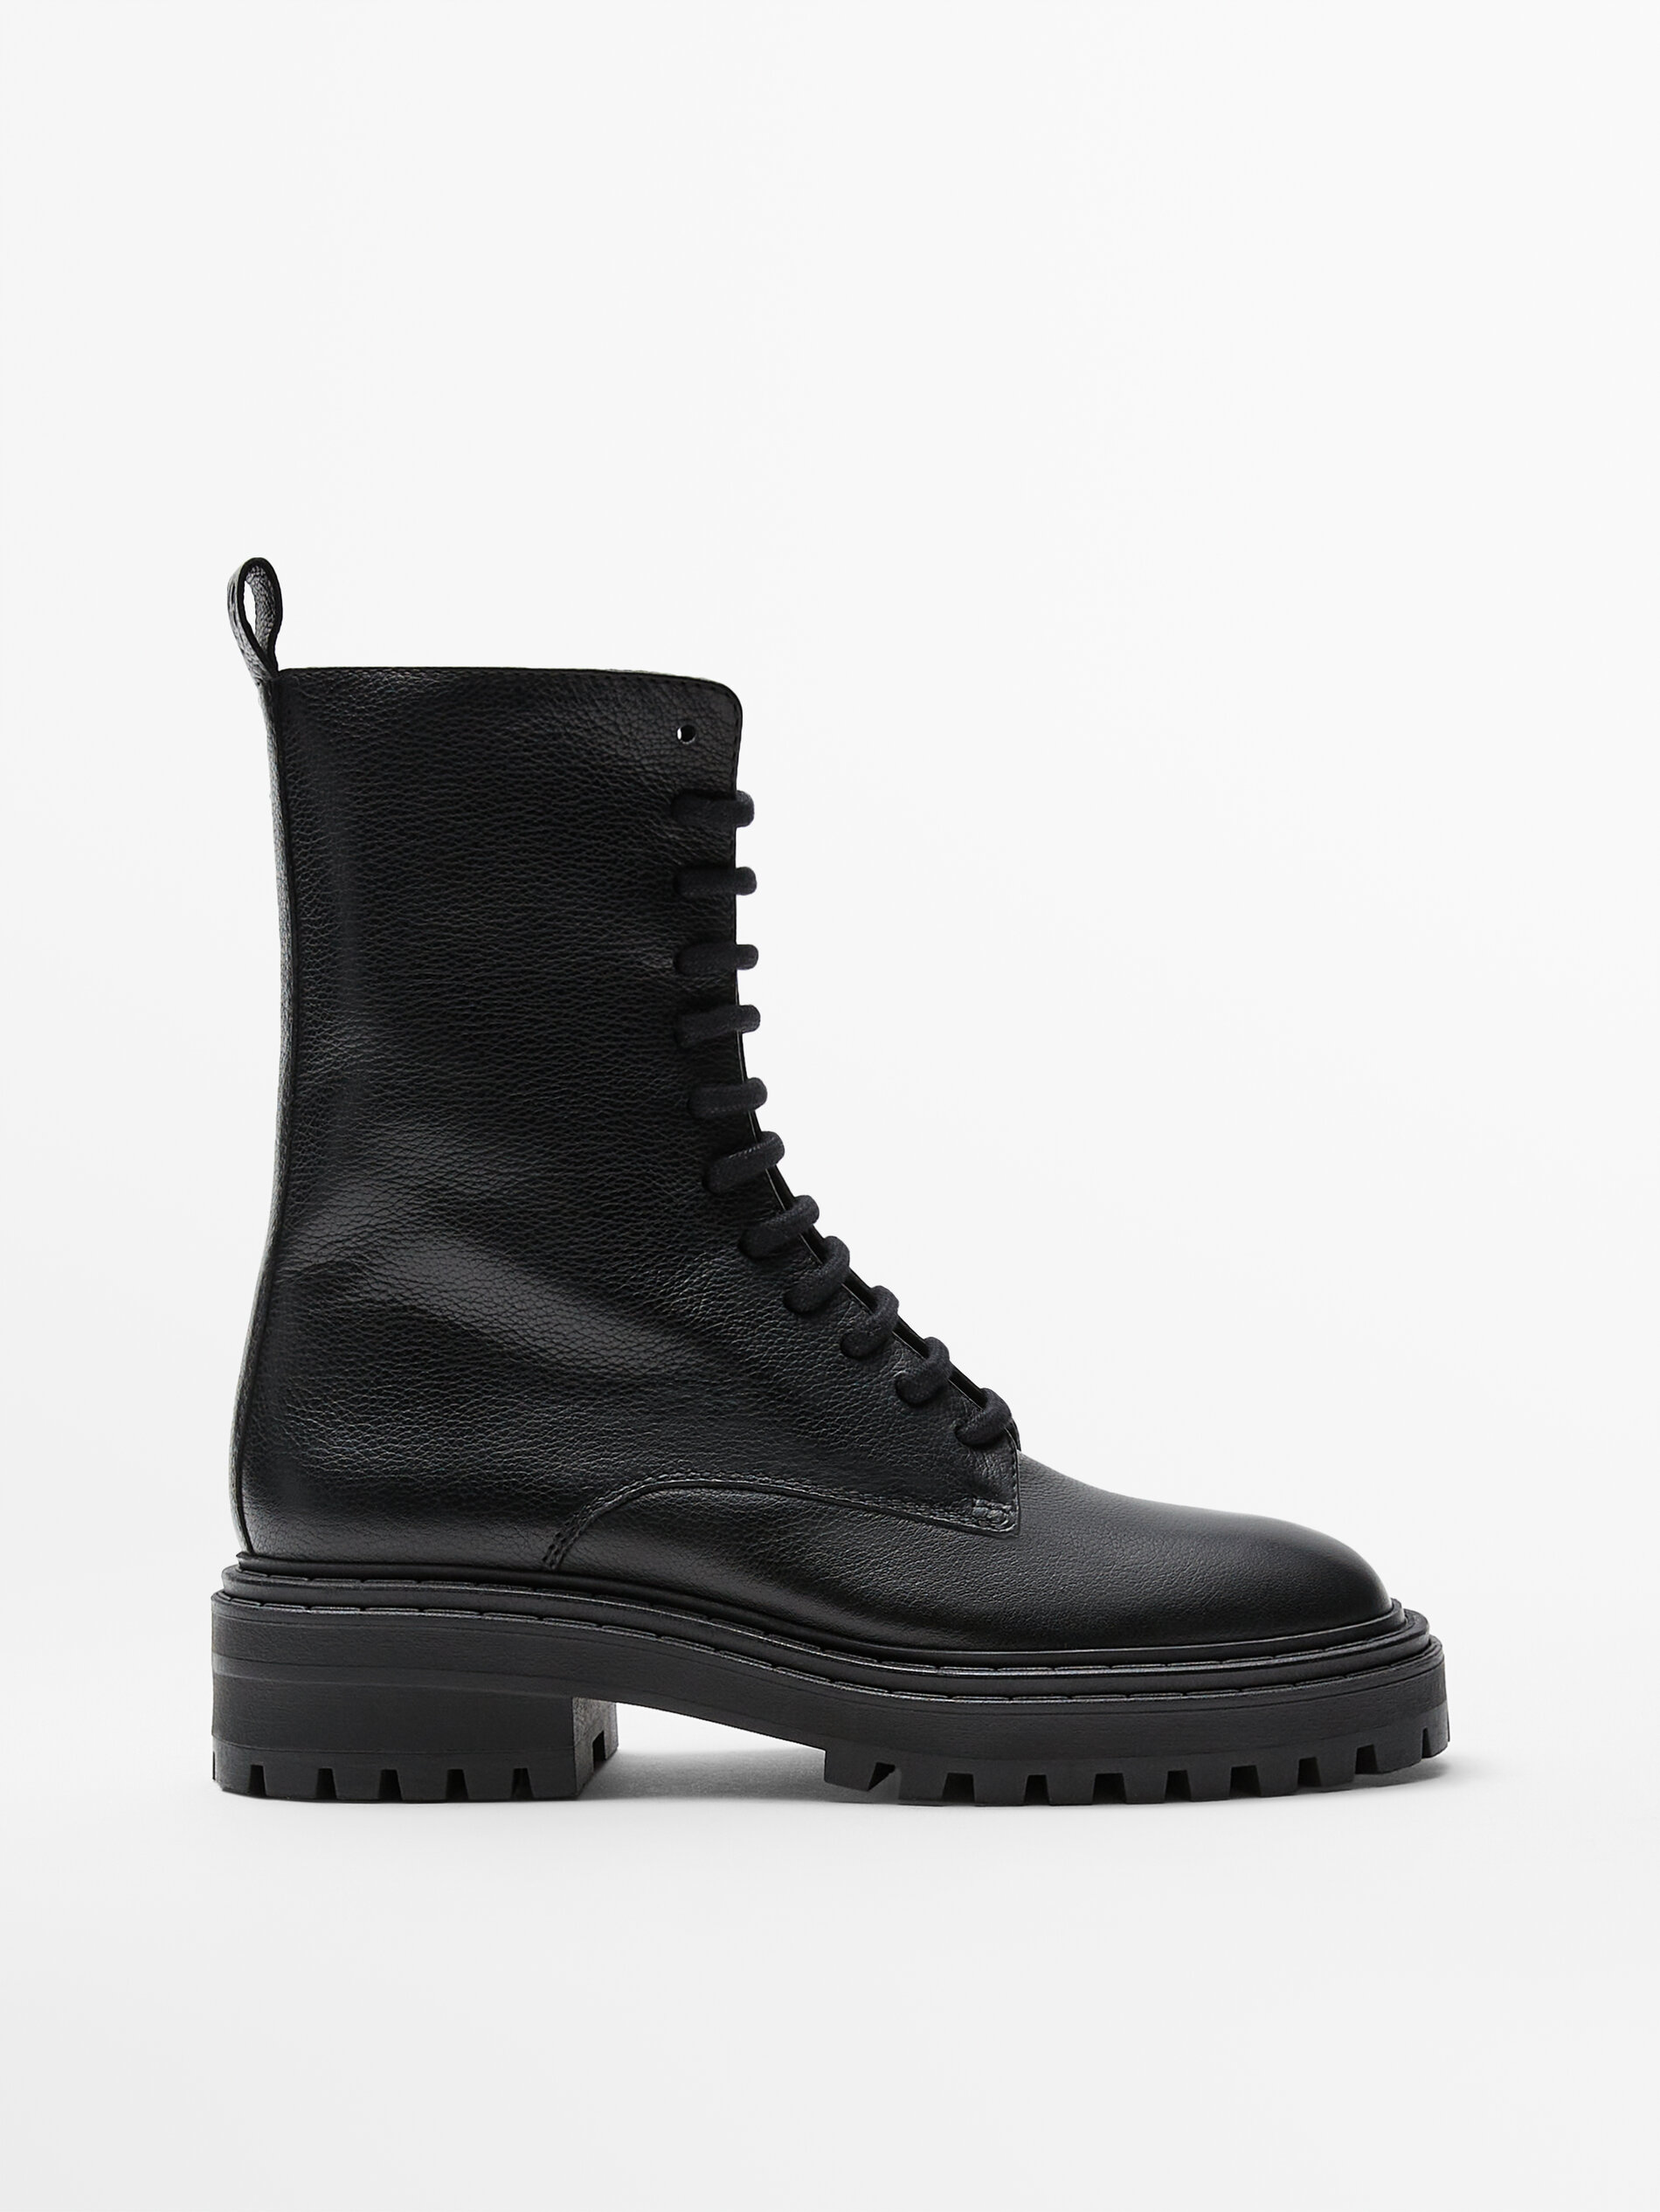 Lace-up black leather boots BLACK